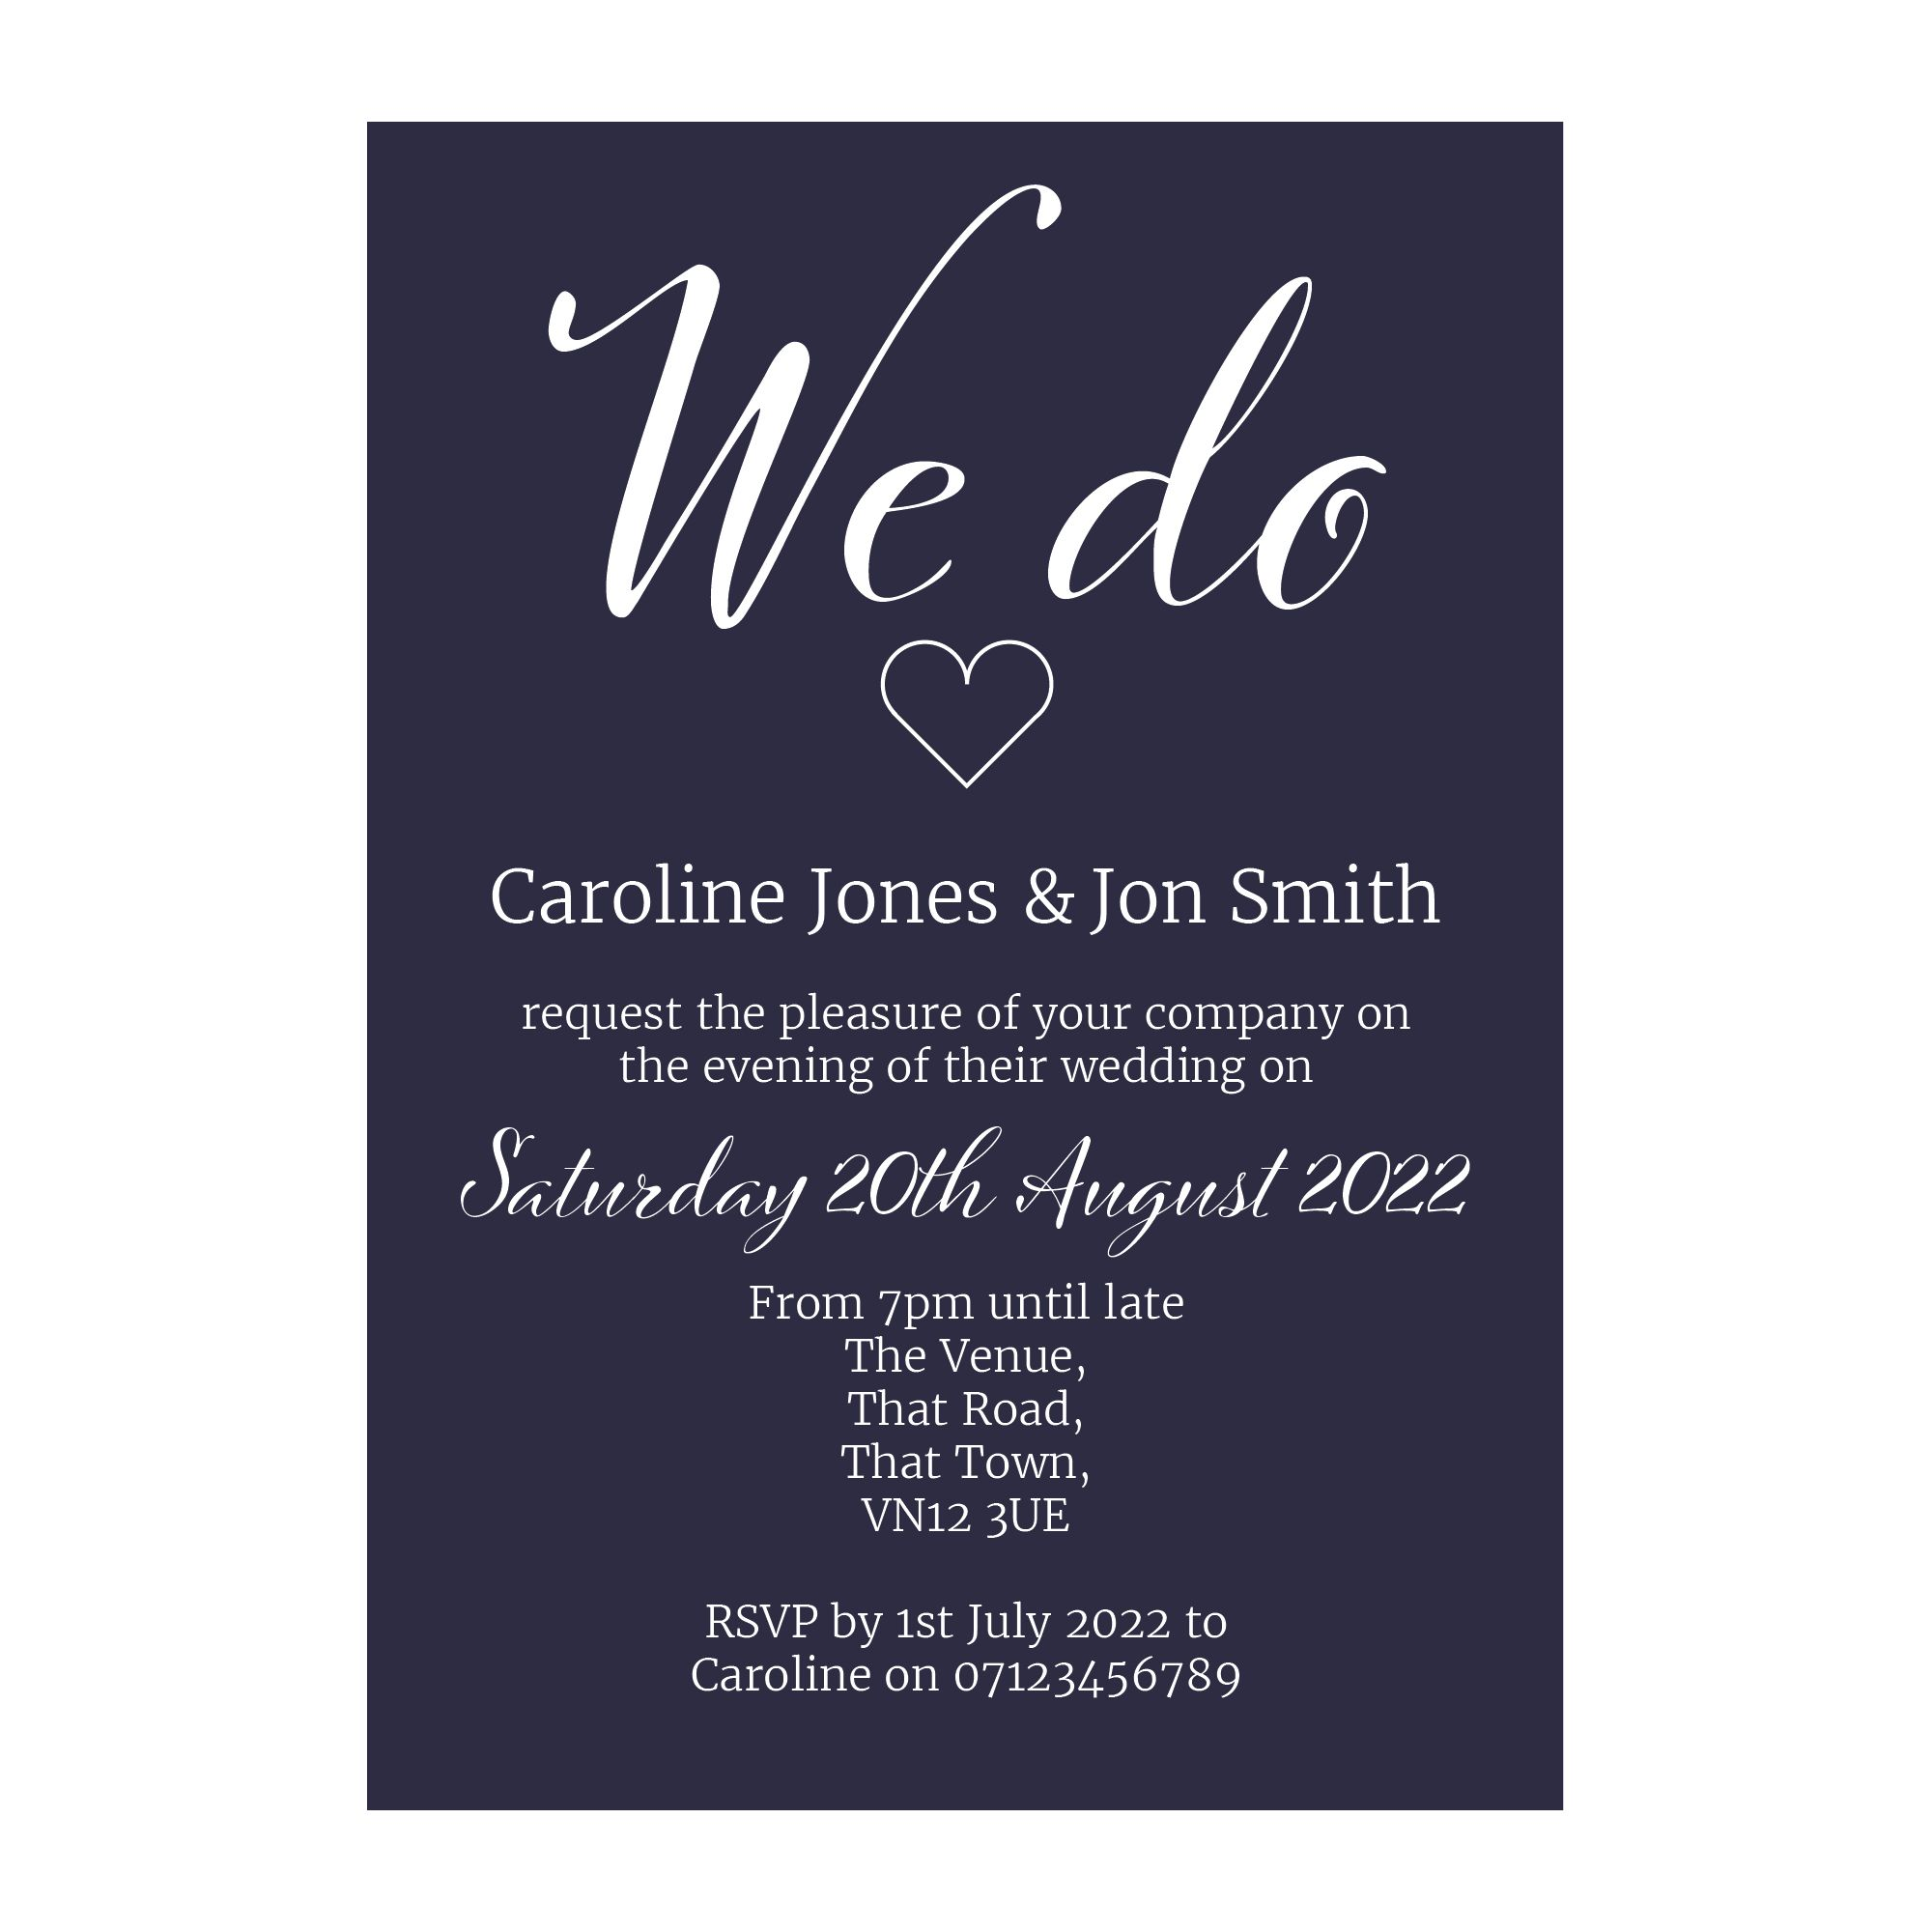 Navy Blue with White Ink We Do Decorative Reception Invitations